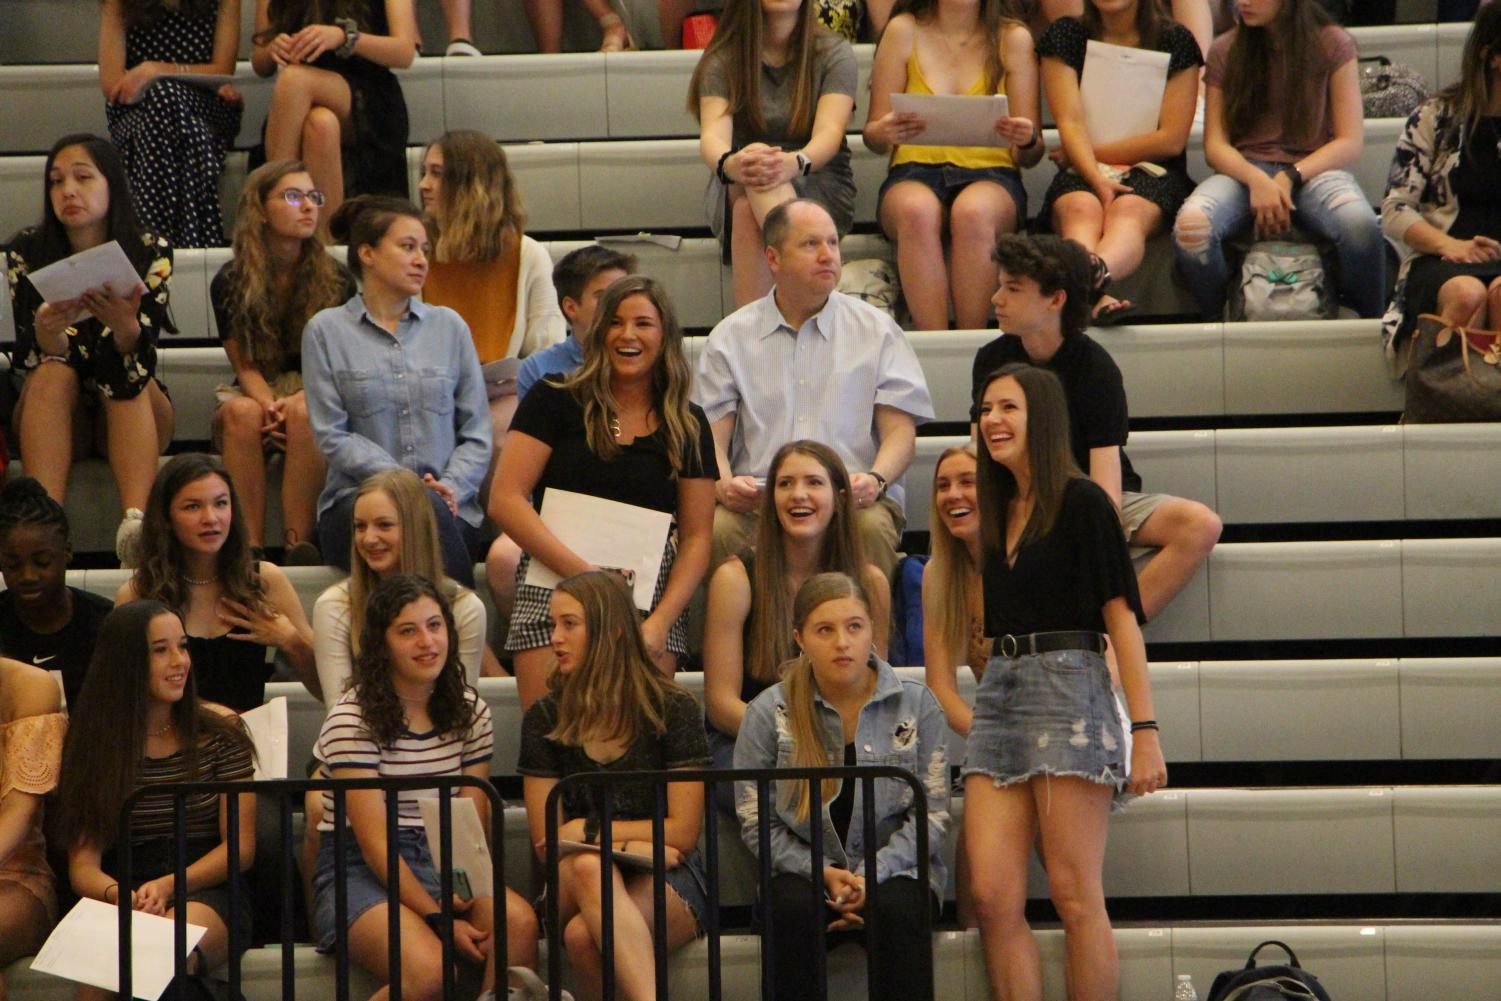 After being recognized for their successes, Brooke Davis and Carson Craft laugh in the bleachers.